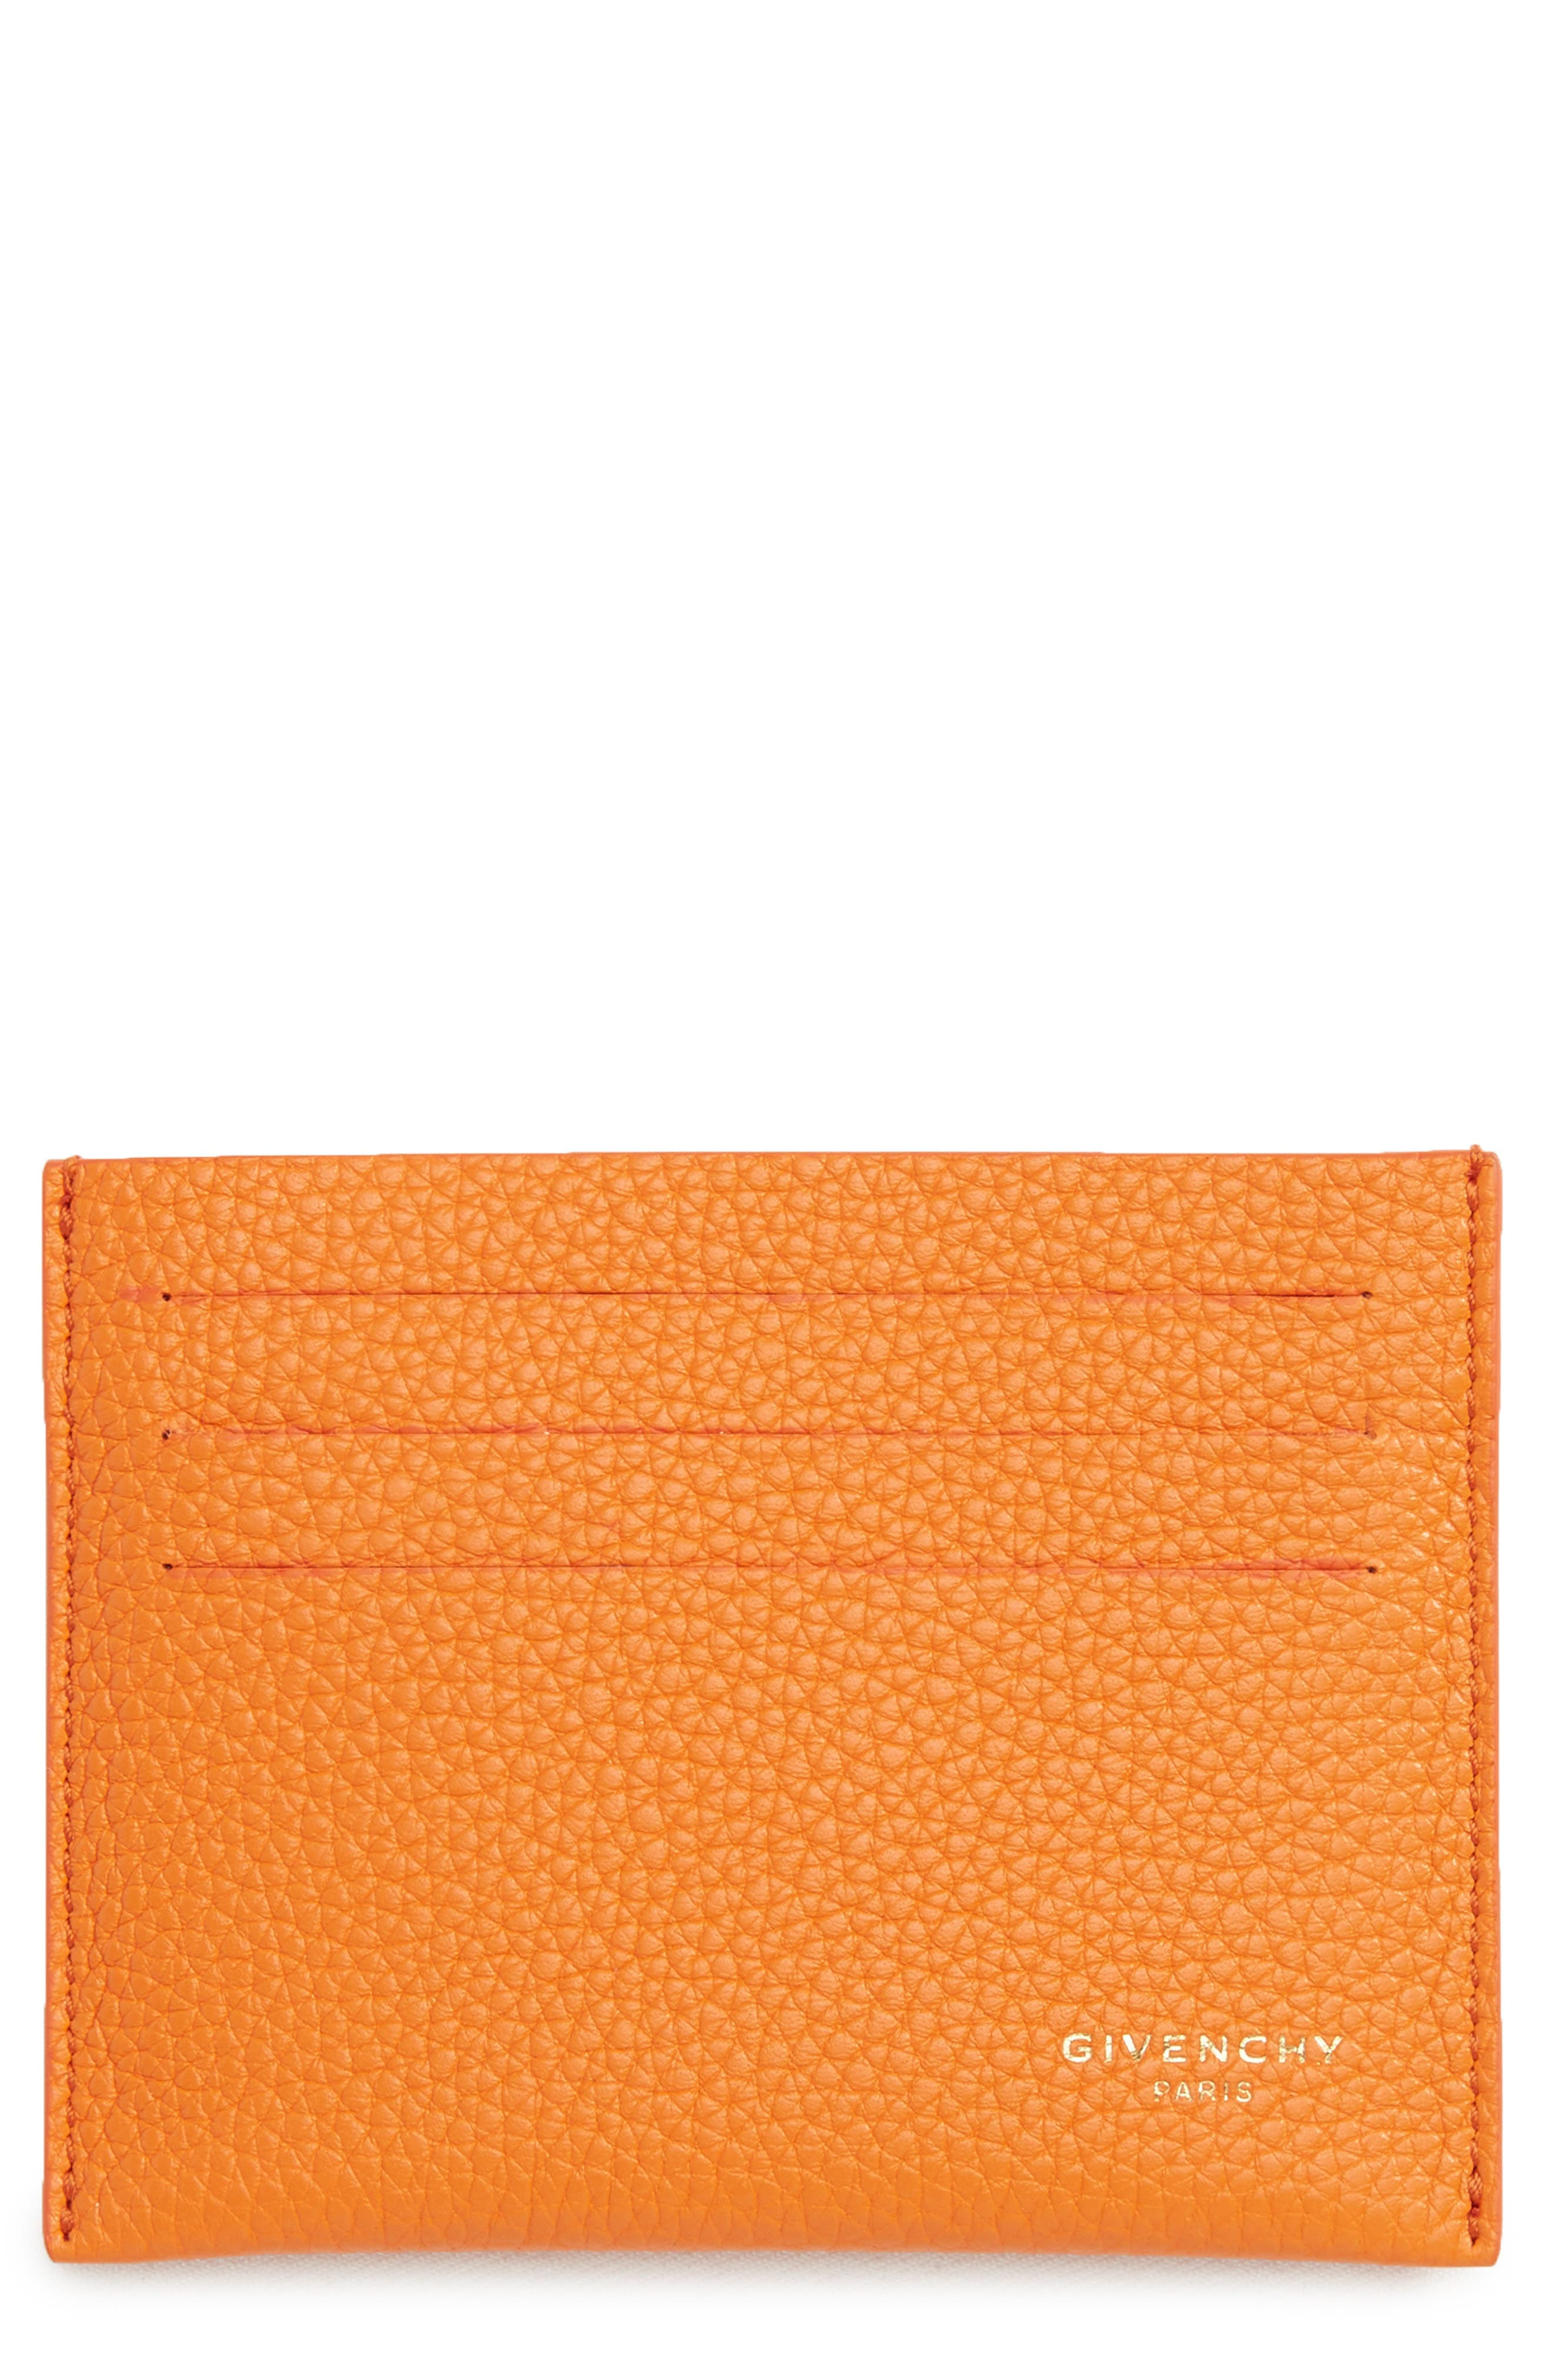 Alternate Image 1 Selected - Givenchy Leather Card Case